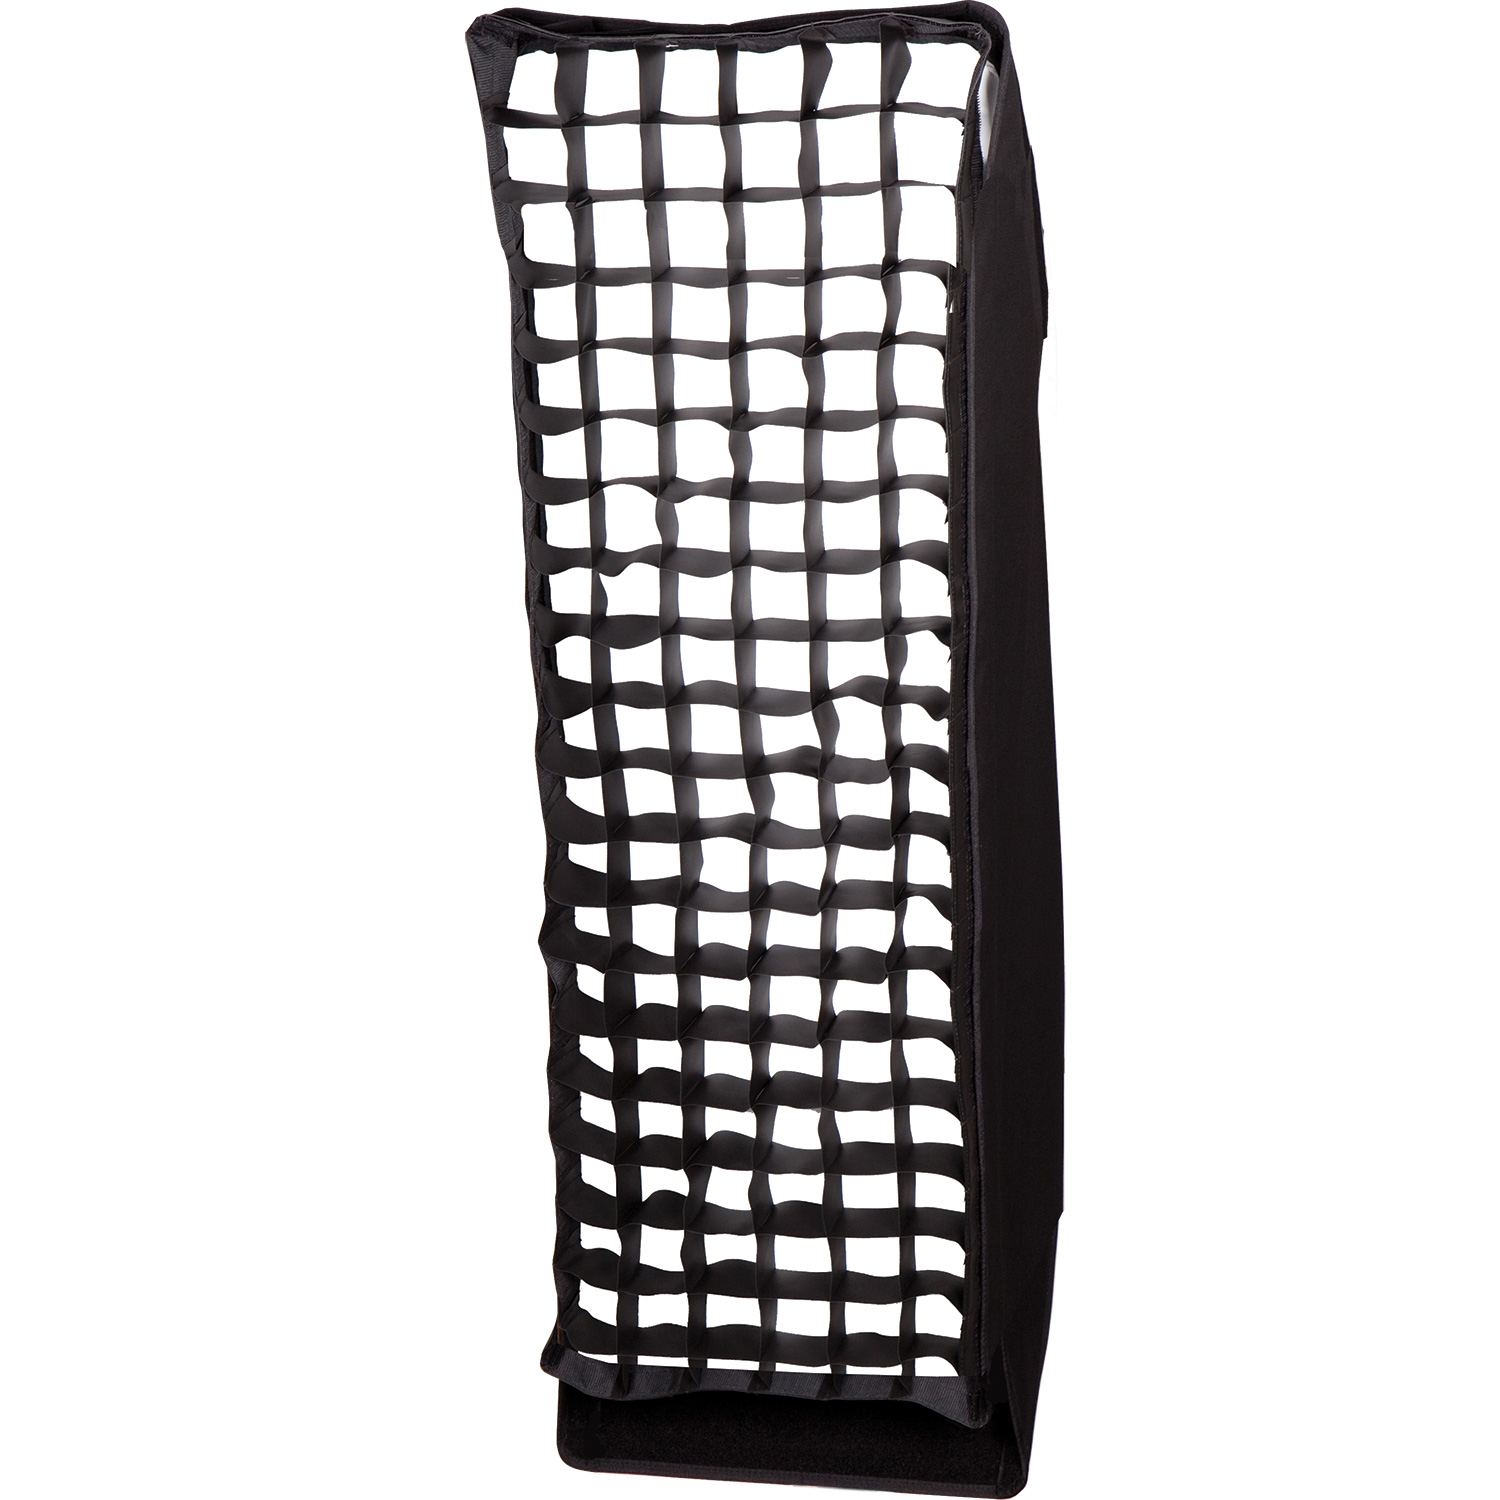 40° Egg Crate Grid for 18-in. x 42-in. Asymmetrical Stripbank